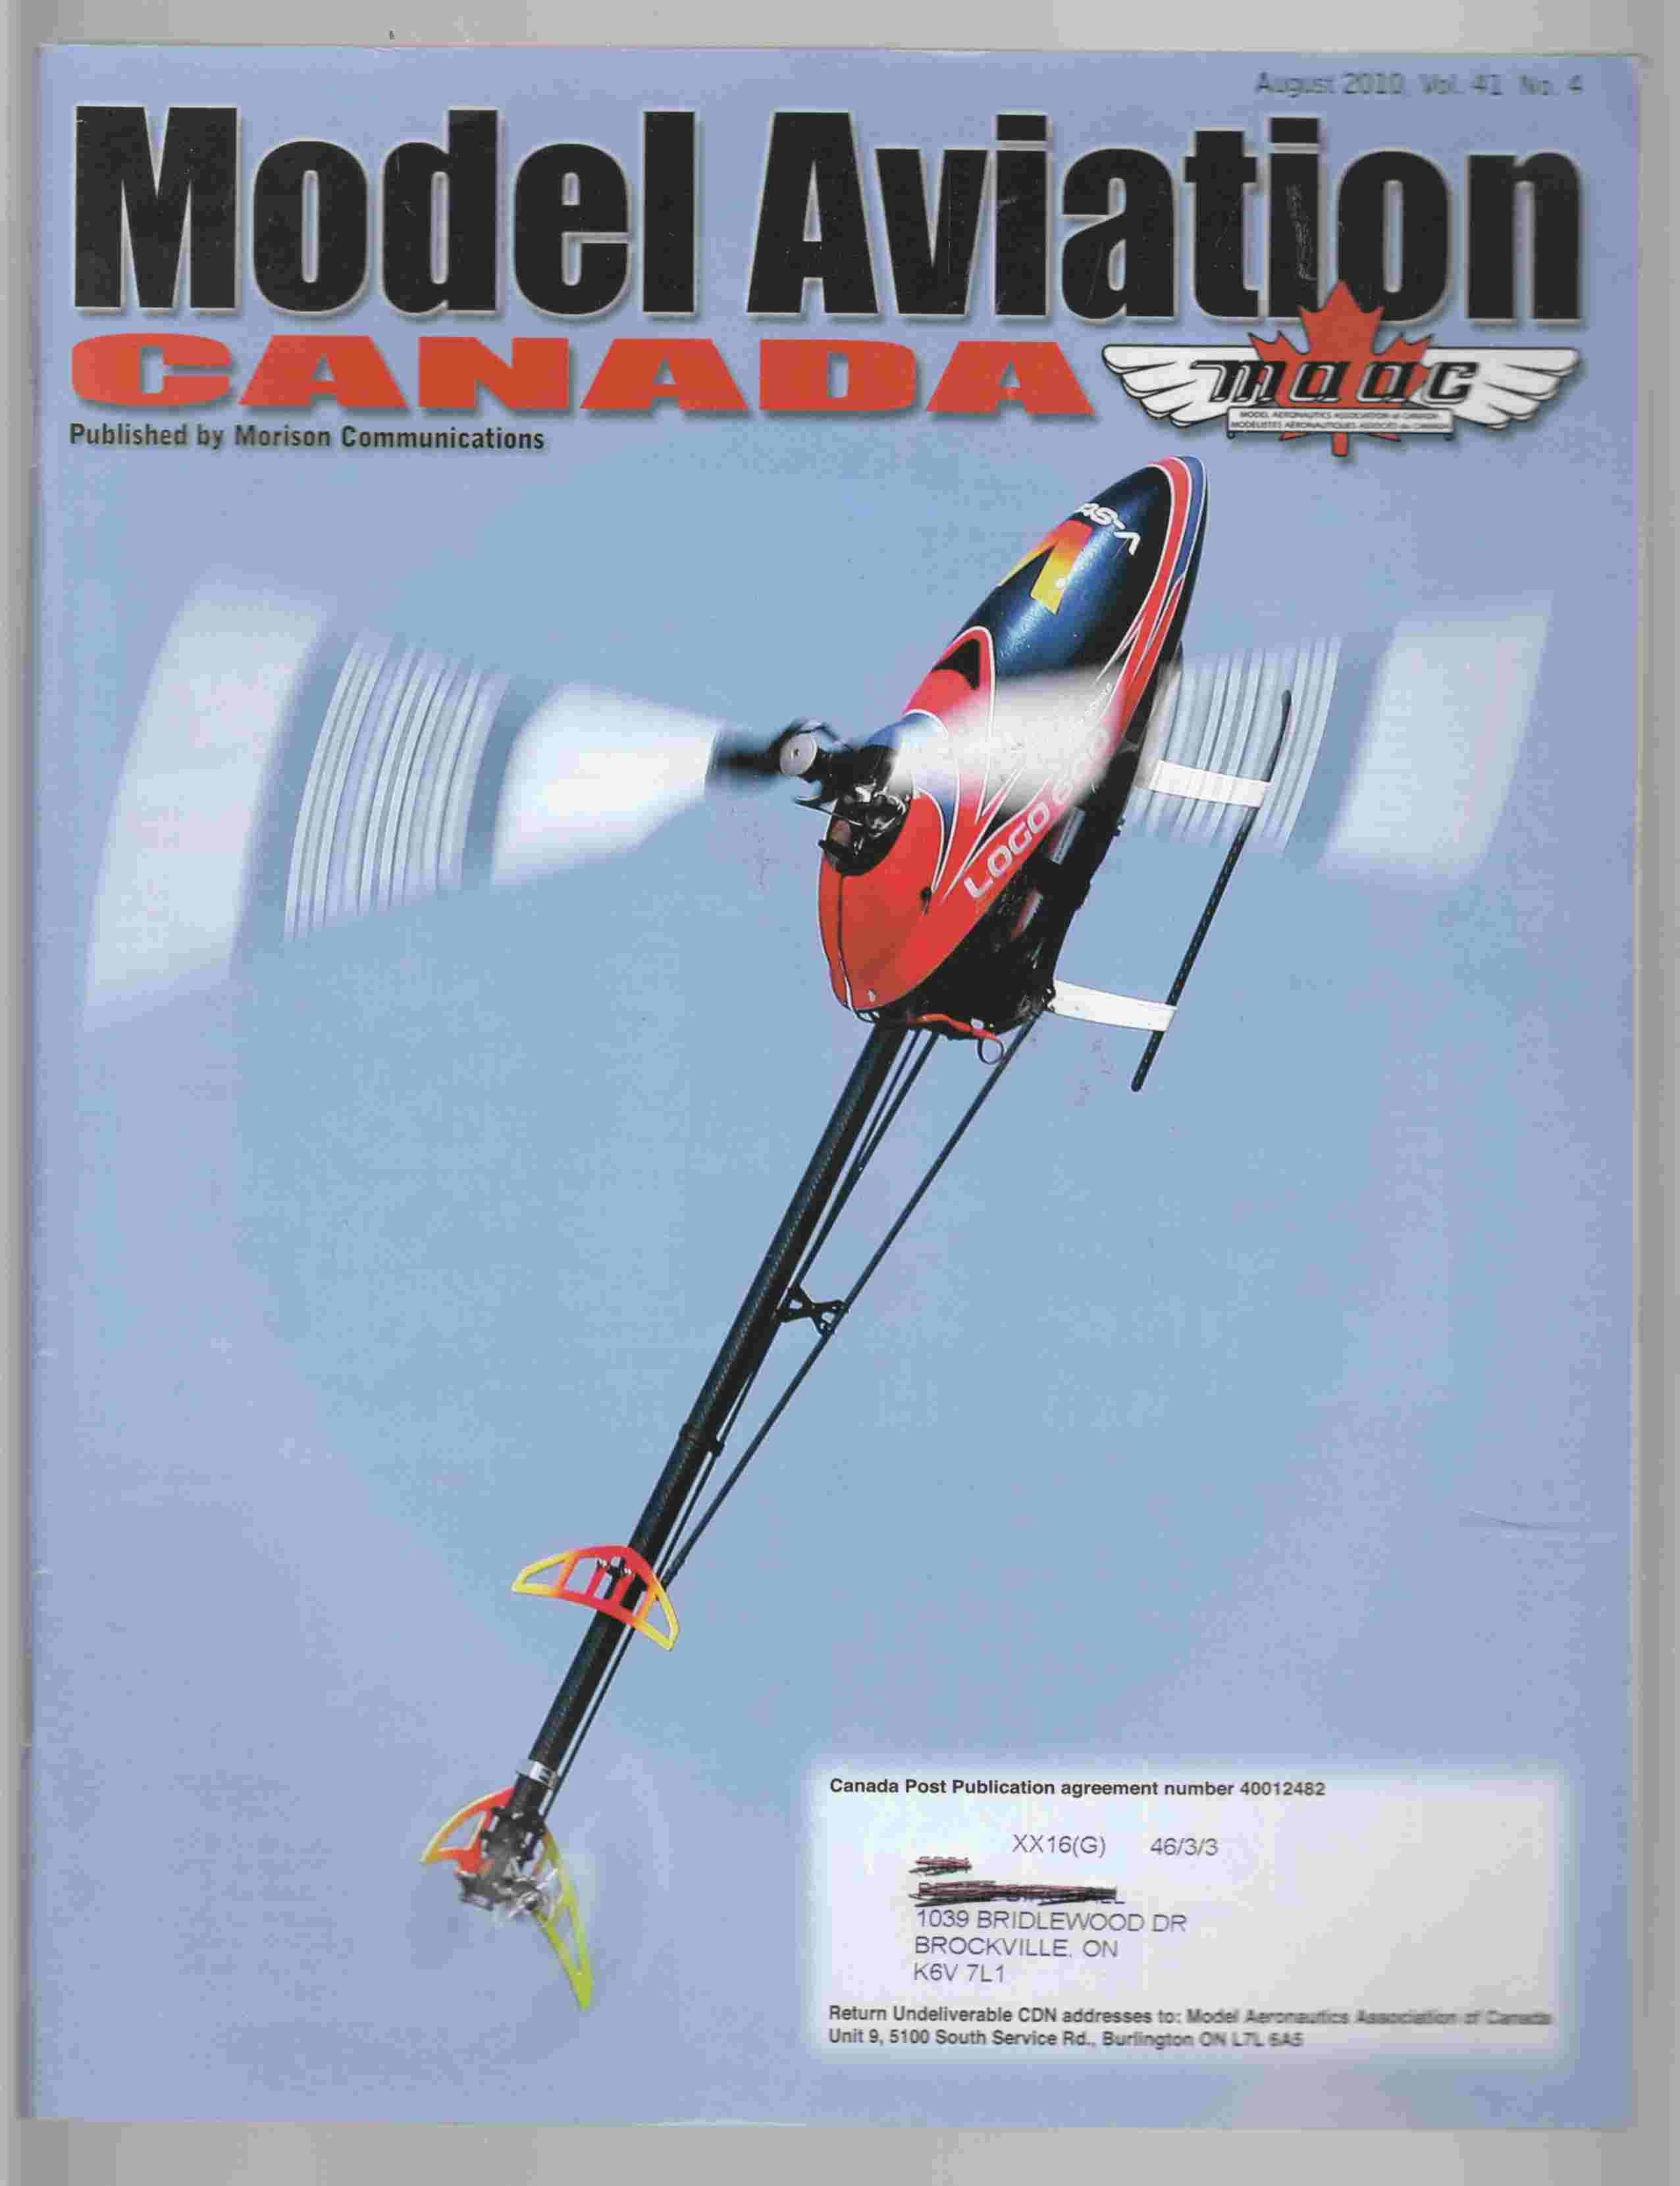 Image for Model Aviation Canada August 2010 Vol. 41 No. 4